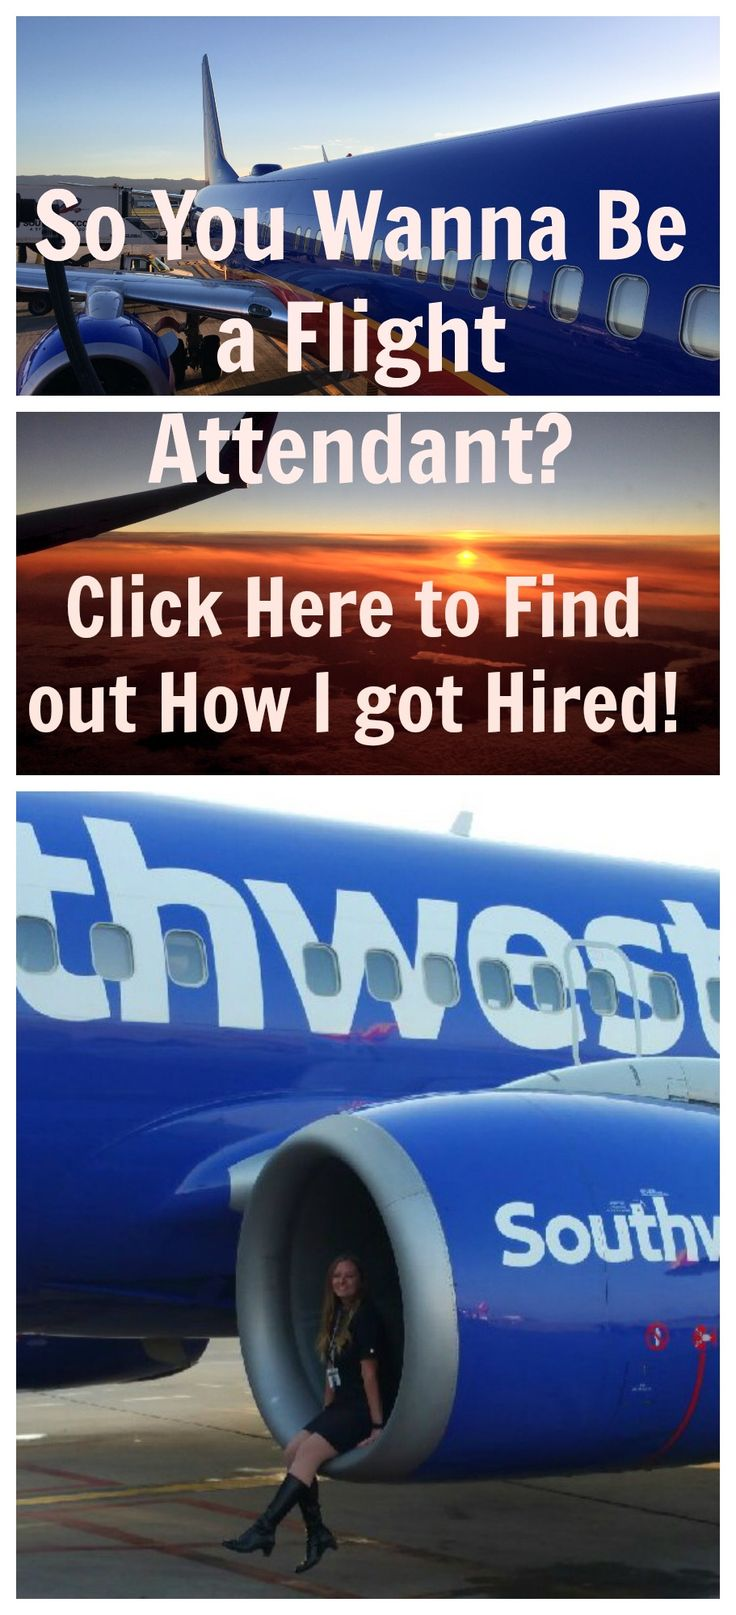 My life as a flight attendant has been life changing. The airlines are hiring, here are some of my tips to get an interview at Southwest Airlines!  https://theluvaviatrix.wordpress.com/2016/08/12/so-you-wanna-be-a-flight-attendant-join-the-luv-crew-southwest-airines-is-hiring/